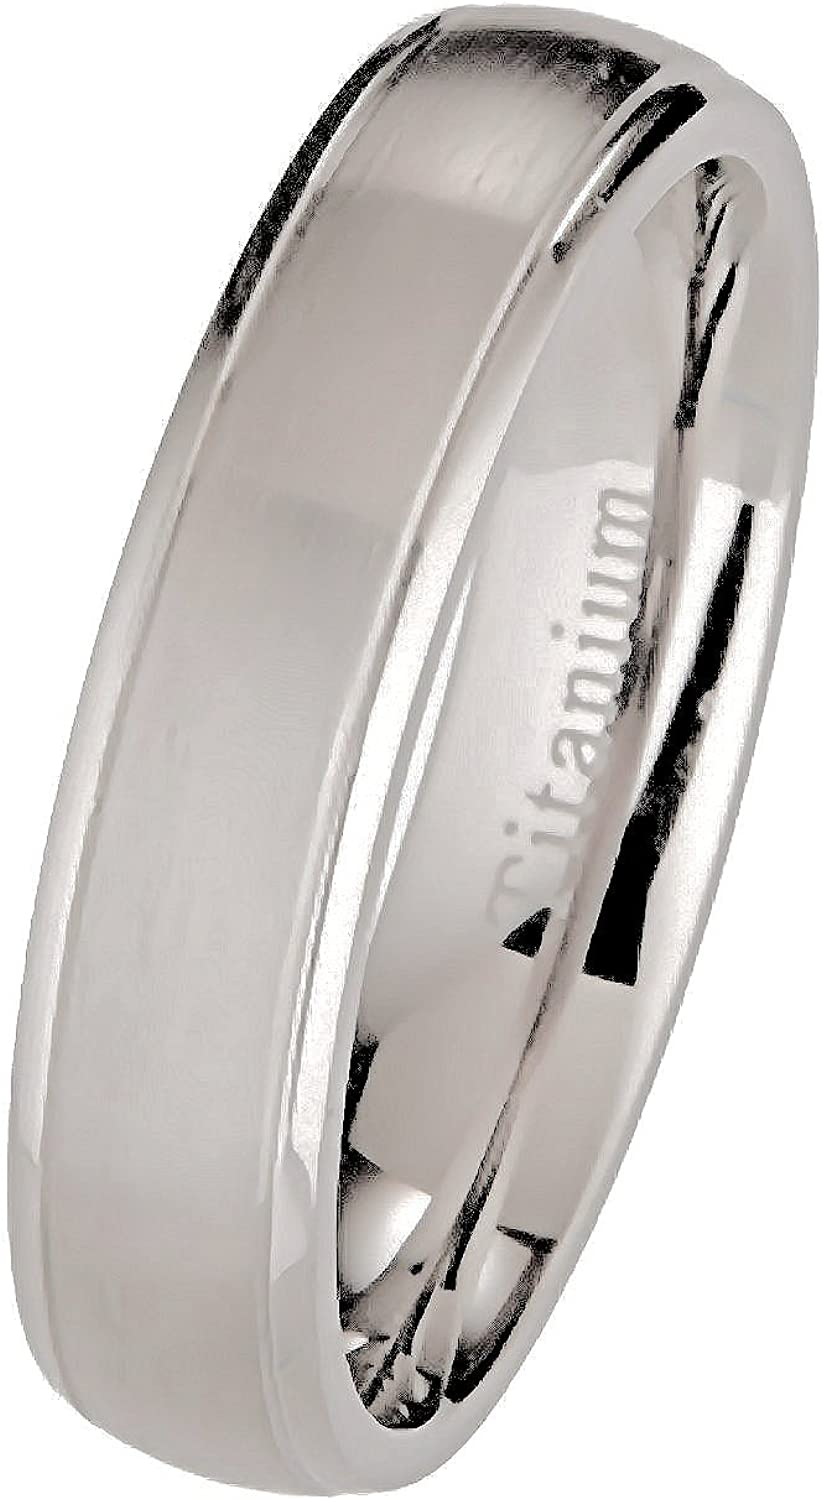 MJ Metals Jewelry 5mm or 7mm Brushed Polished Titanium Wedding Band Comfort Fit Band